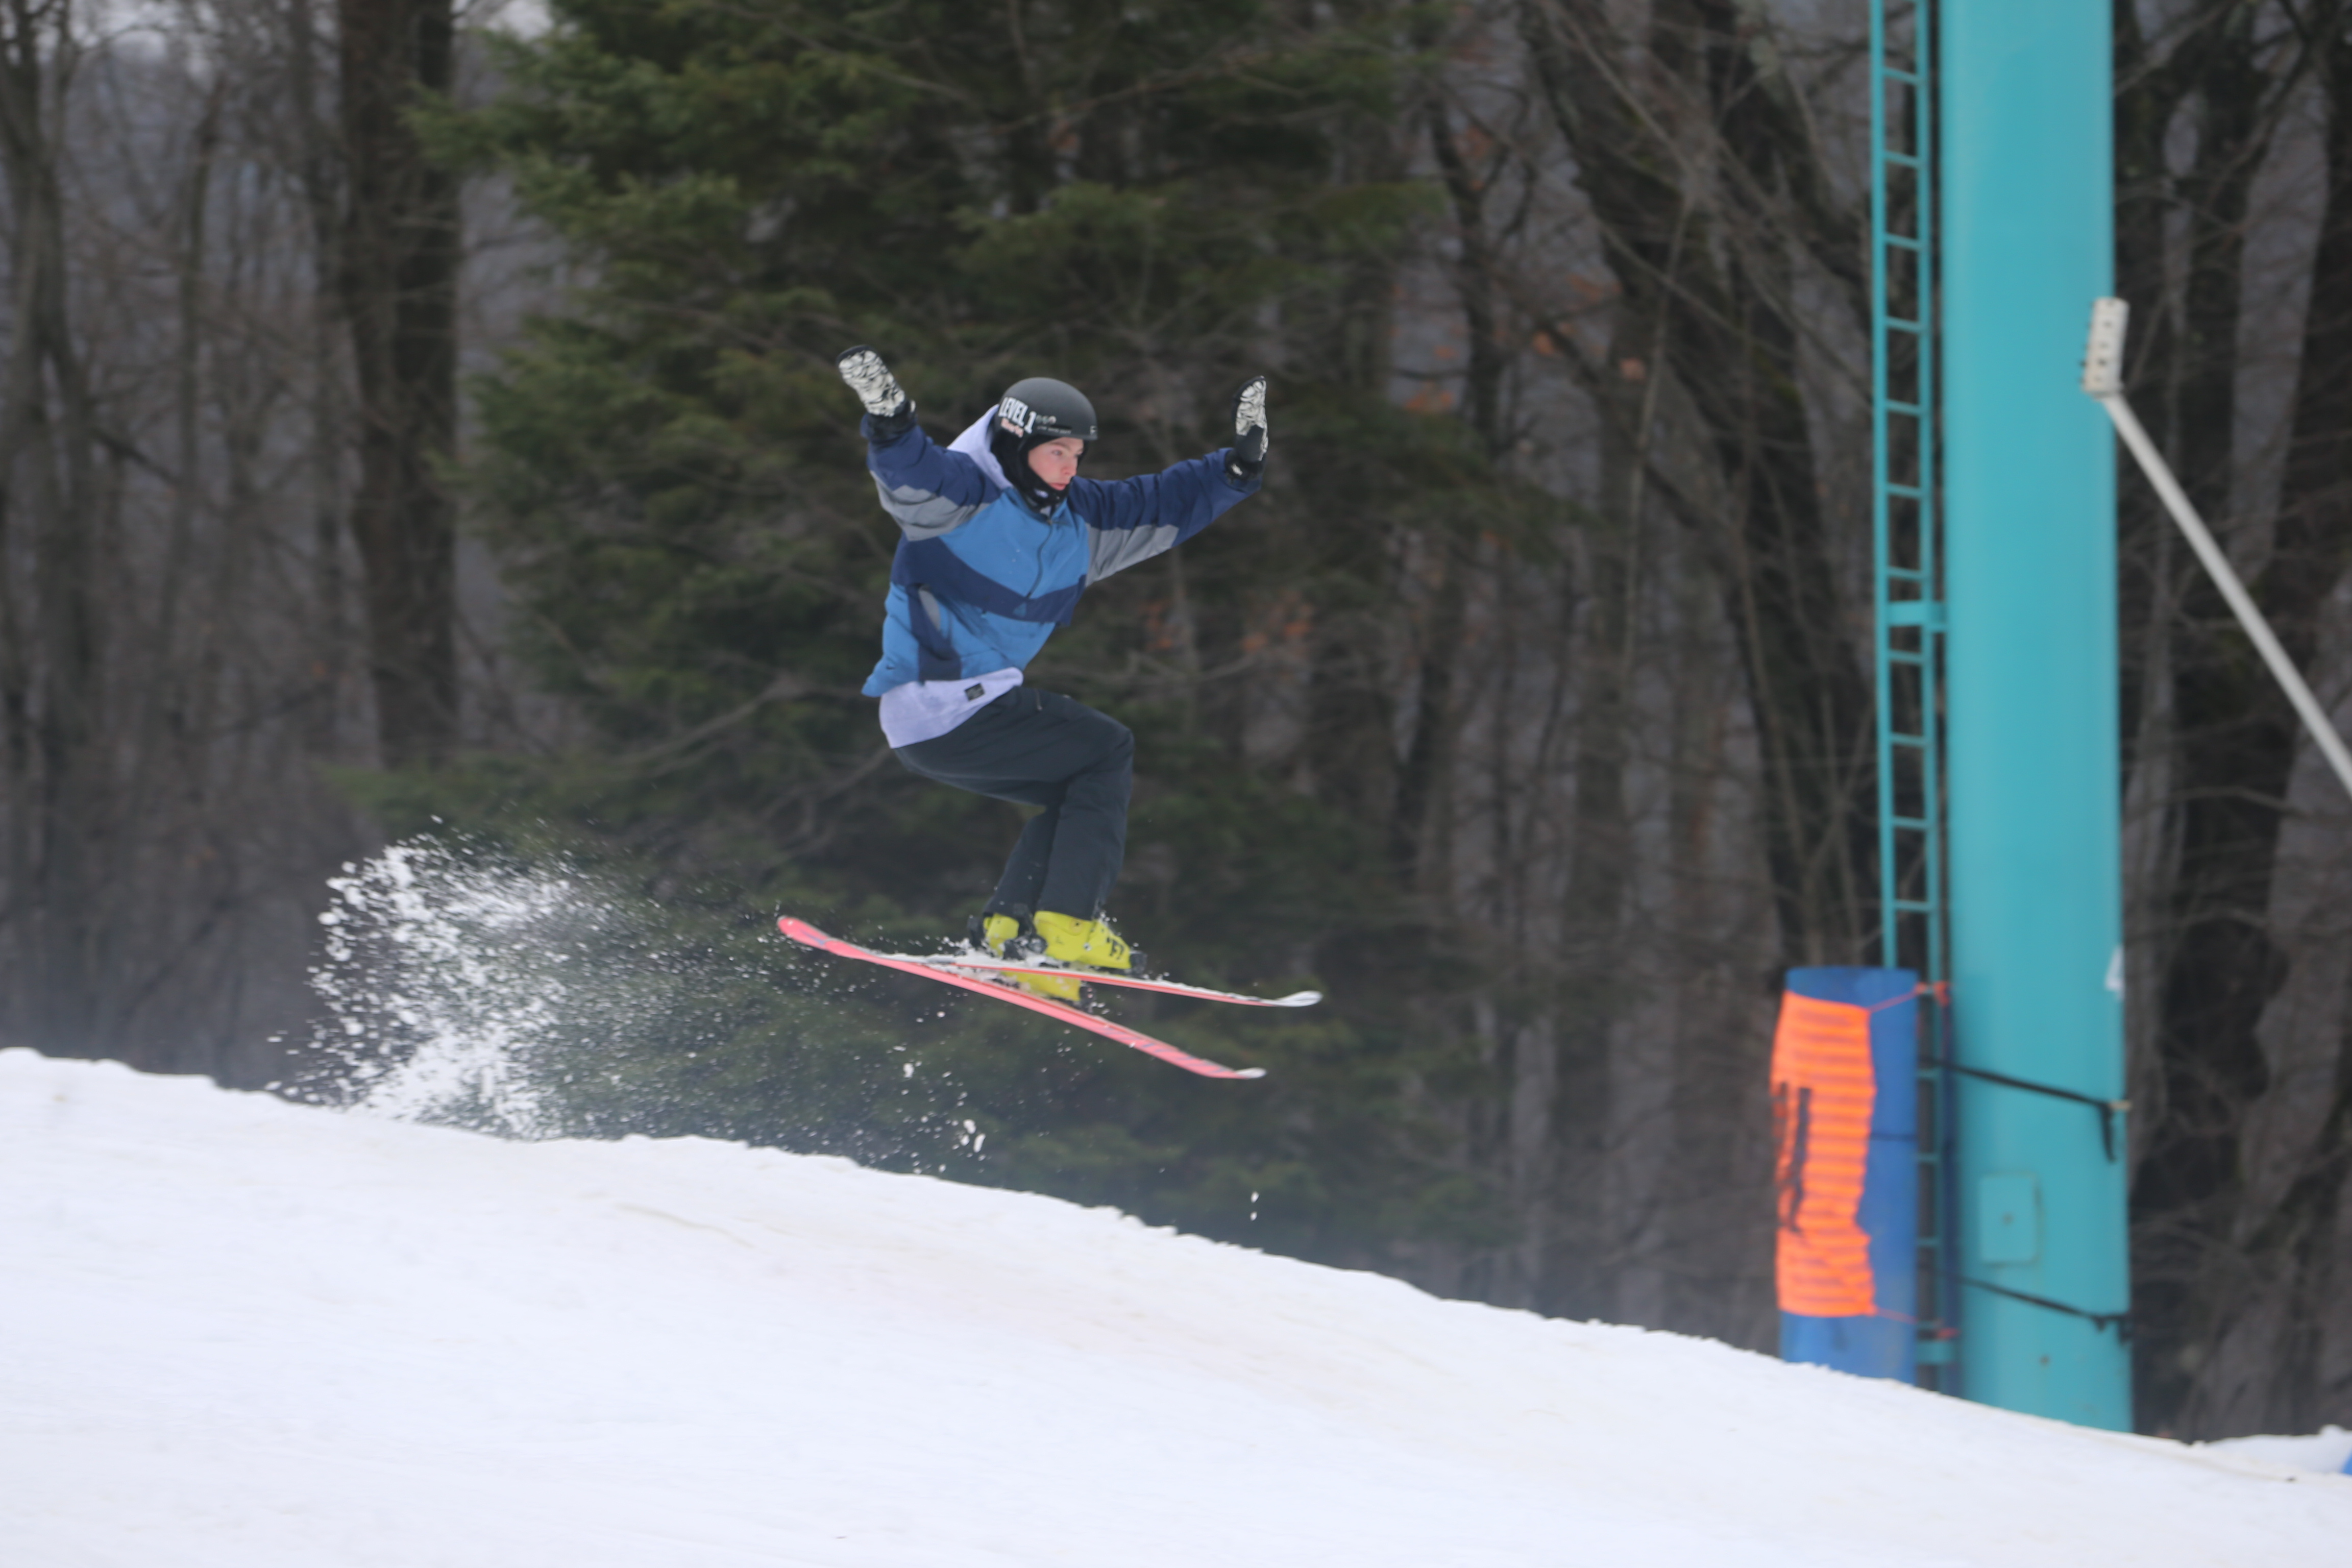 Adam Lamb, 15, of Grimsby, Ont., hits a jump on Mardi Gras as the slopes opened at Holiday Valley in Ellicottville, on Sunday, Nov. 27, 2016. (John Hickey/Buffalo News)